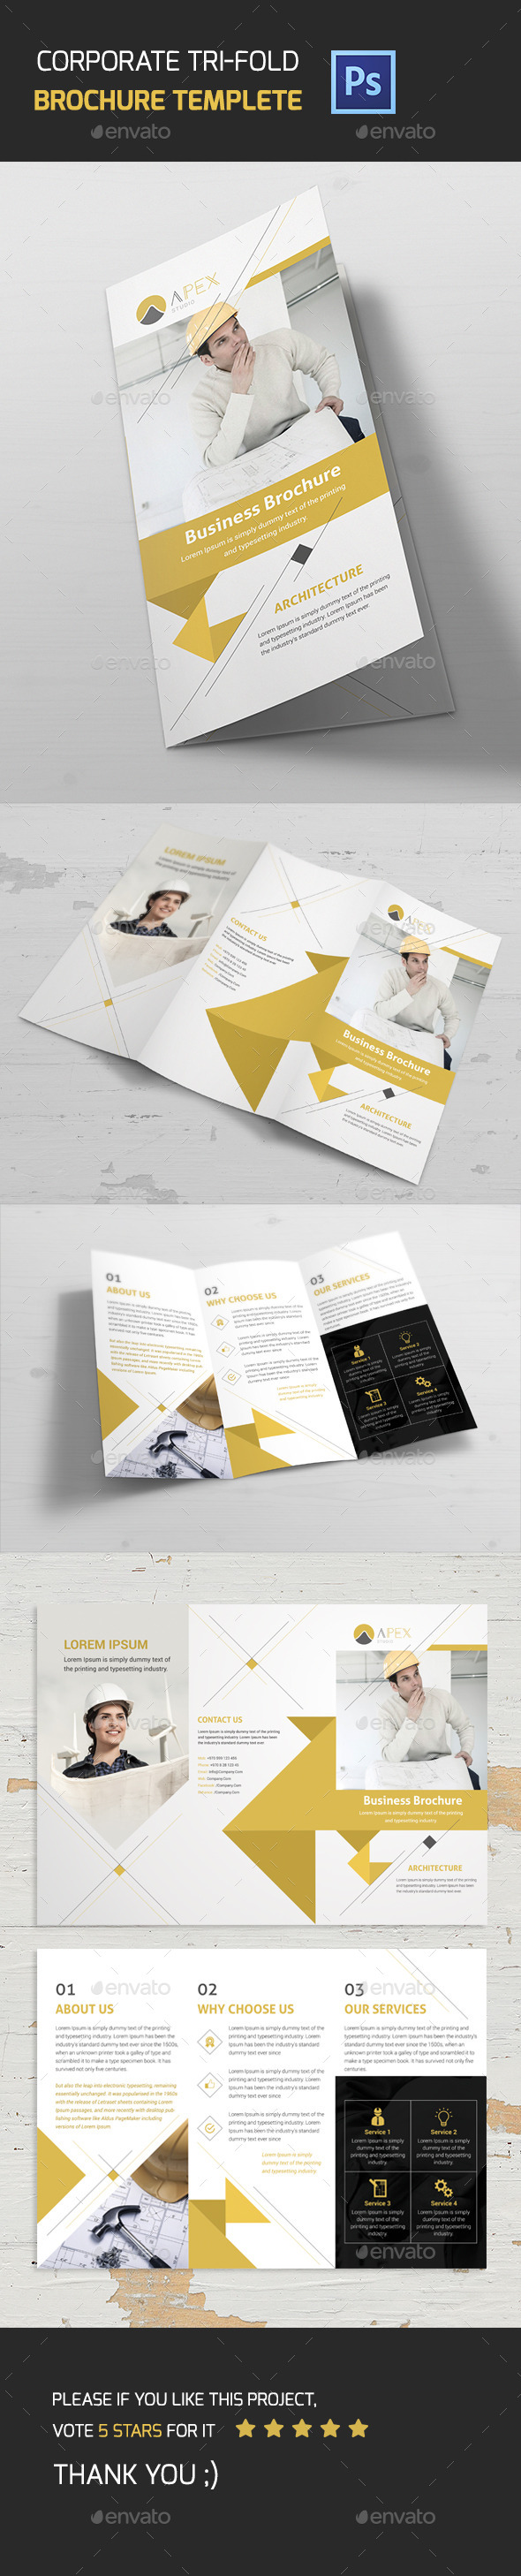 Corporate Tri-Fold Brochure - Corporate Business Cards